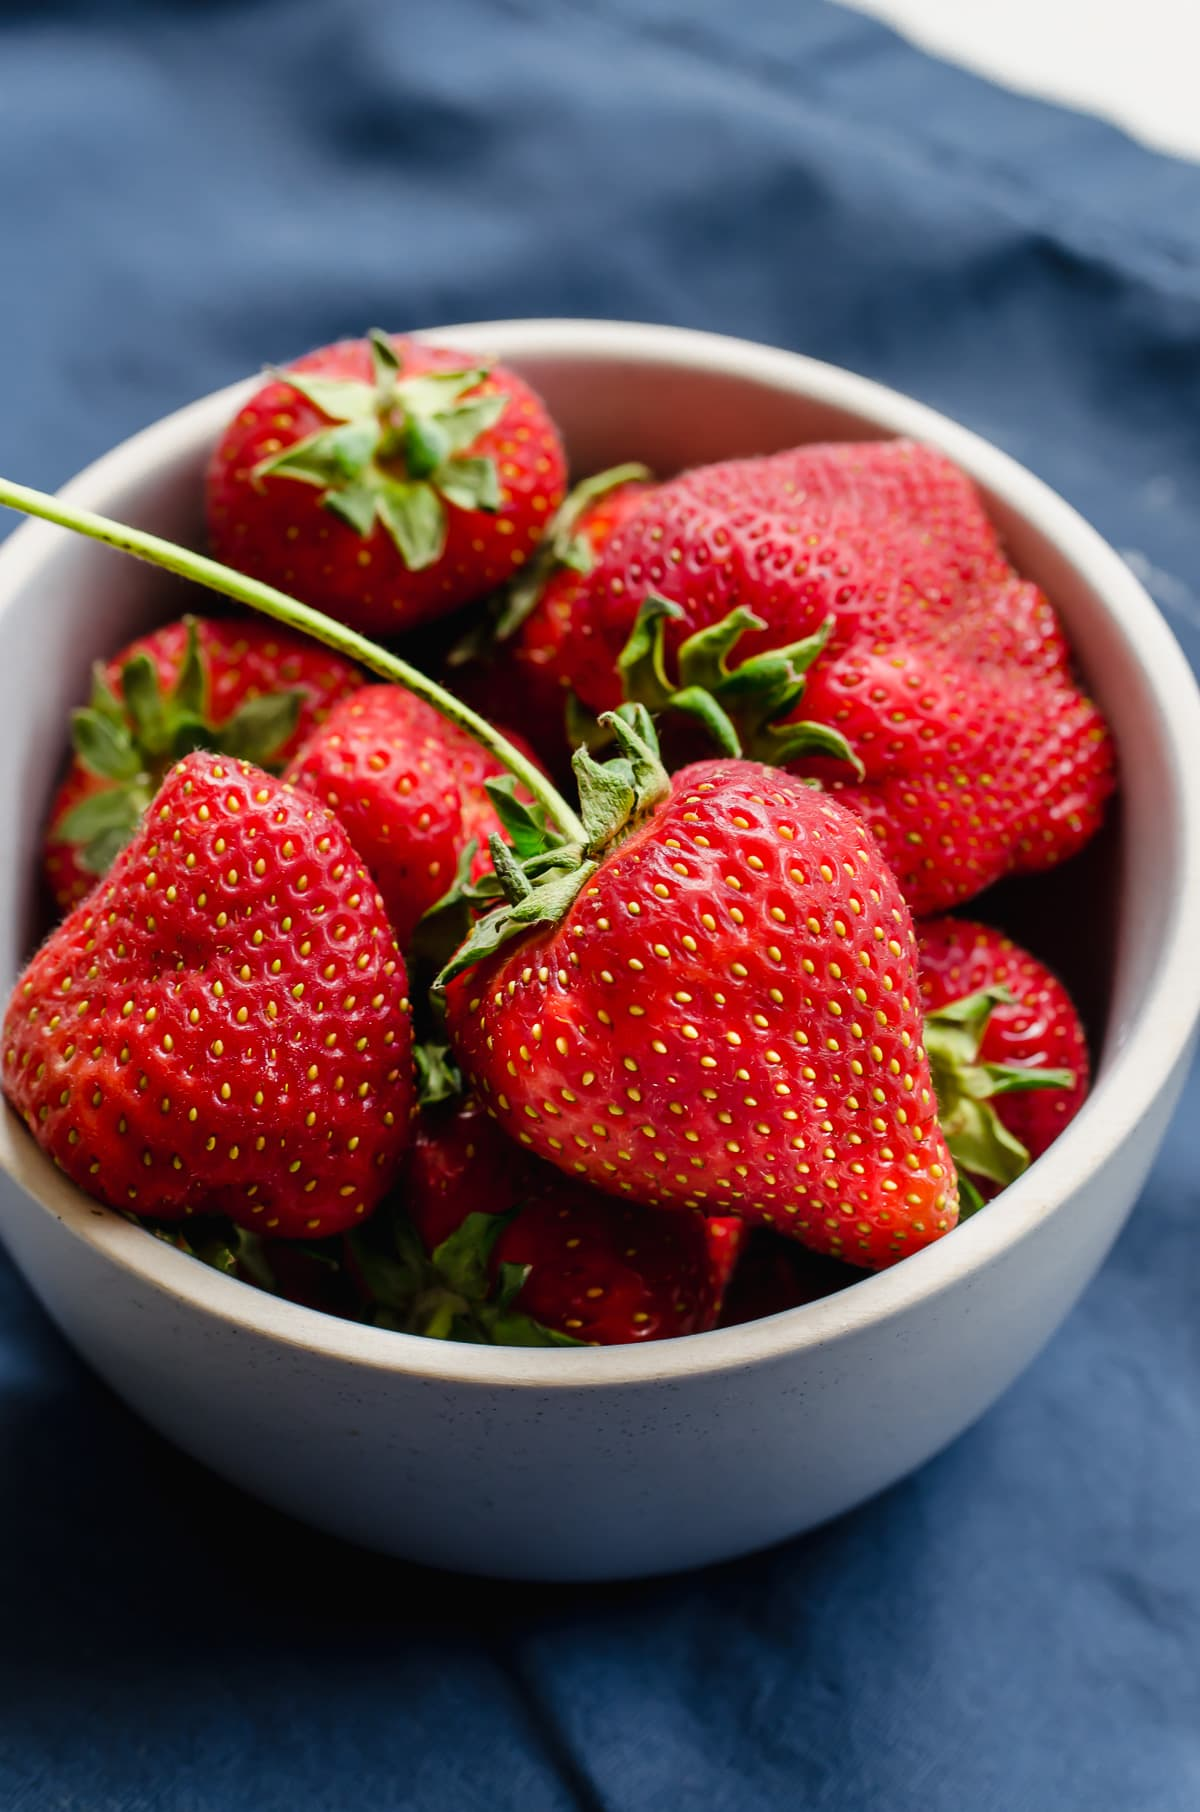 A bowl of fresh strawberries on a blue dish towel.